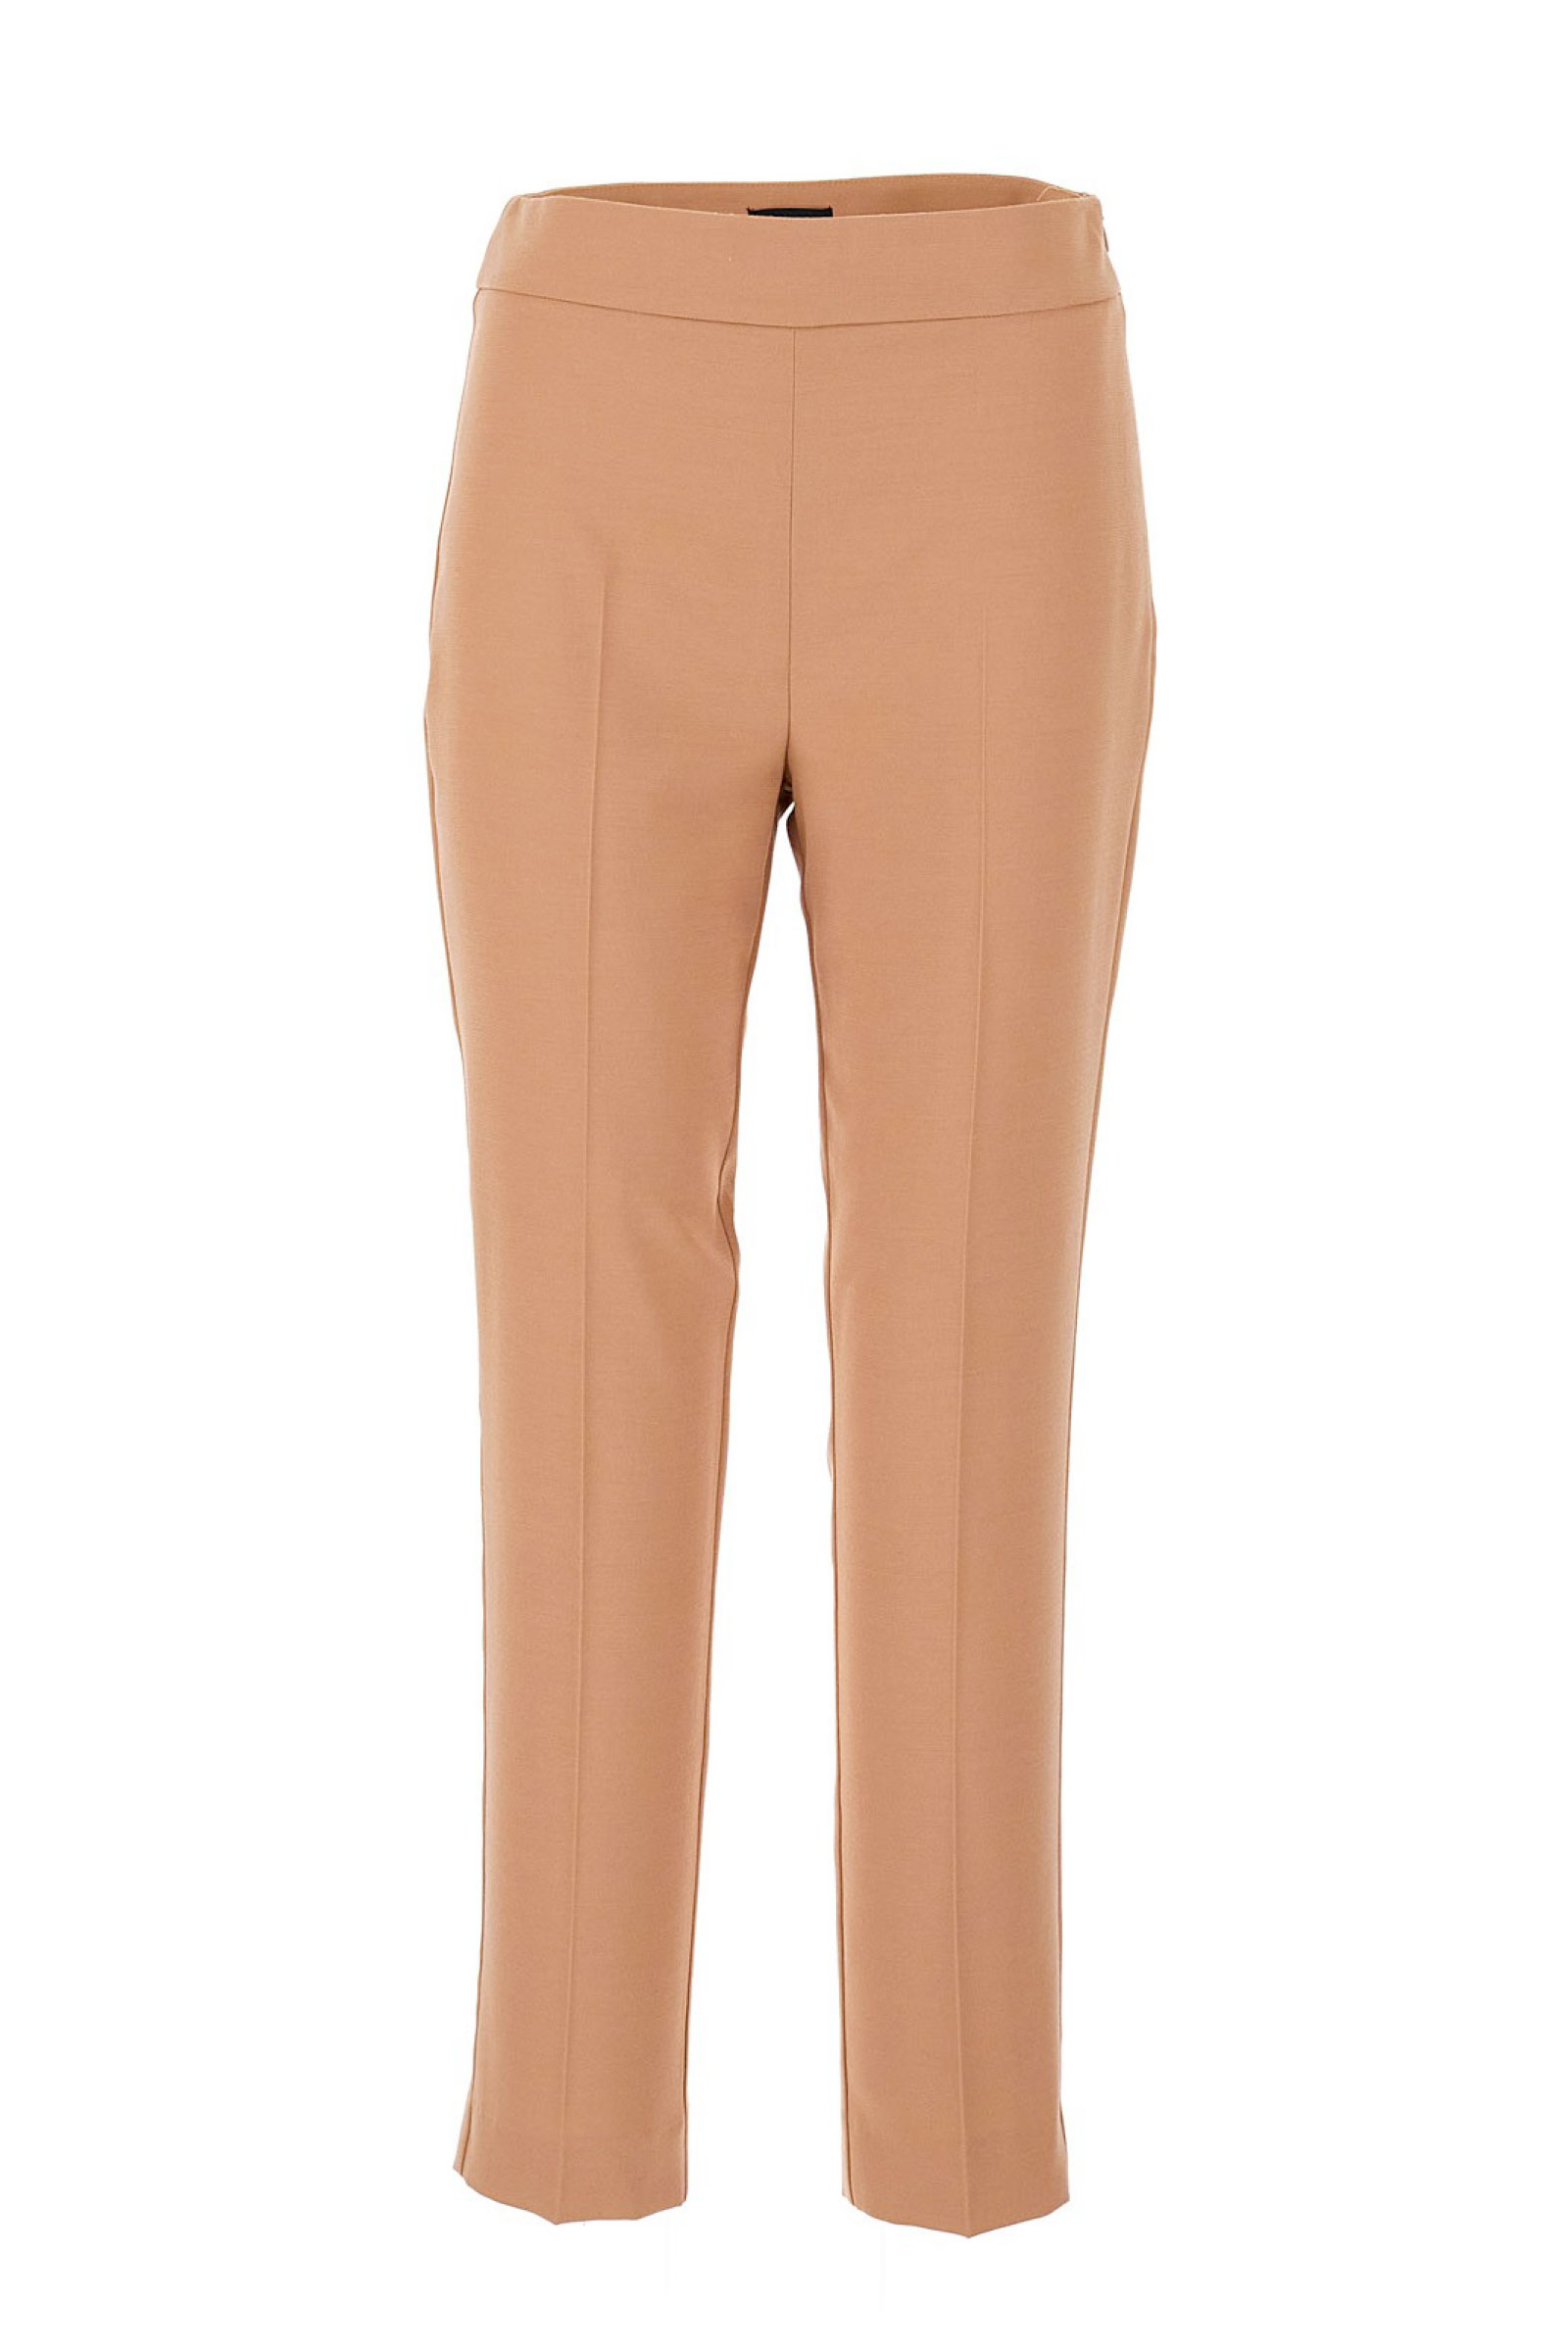 EMME MARELLA | Trousers | 51310314000004